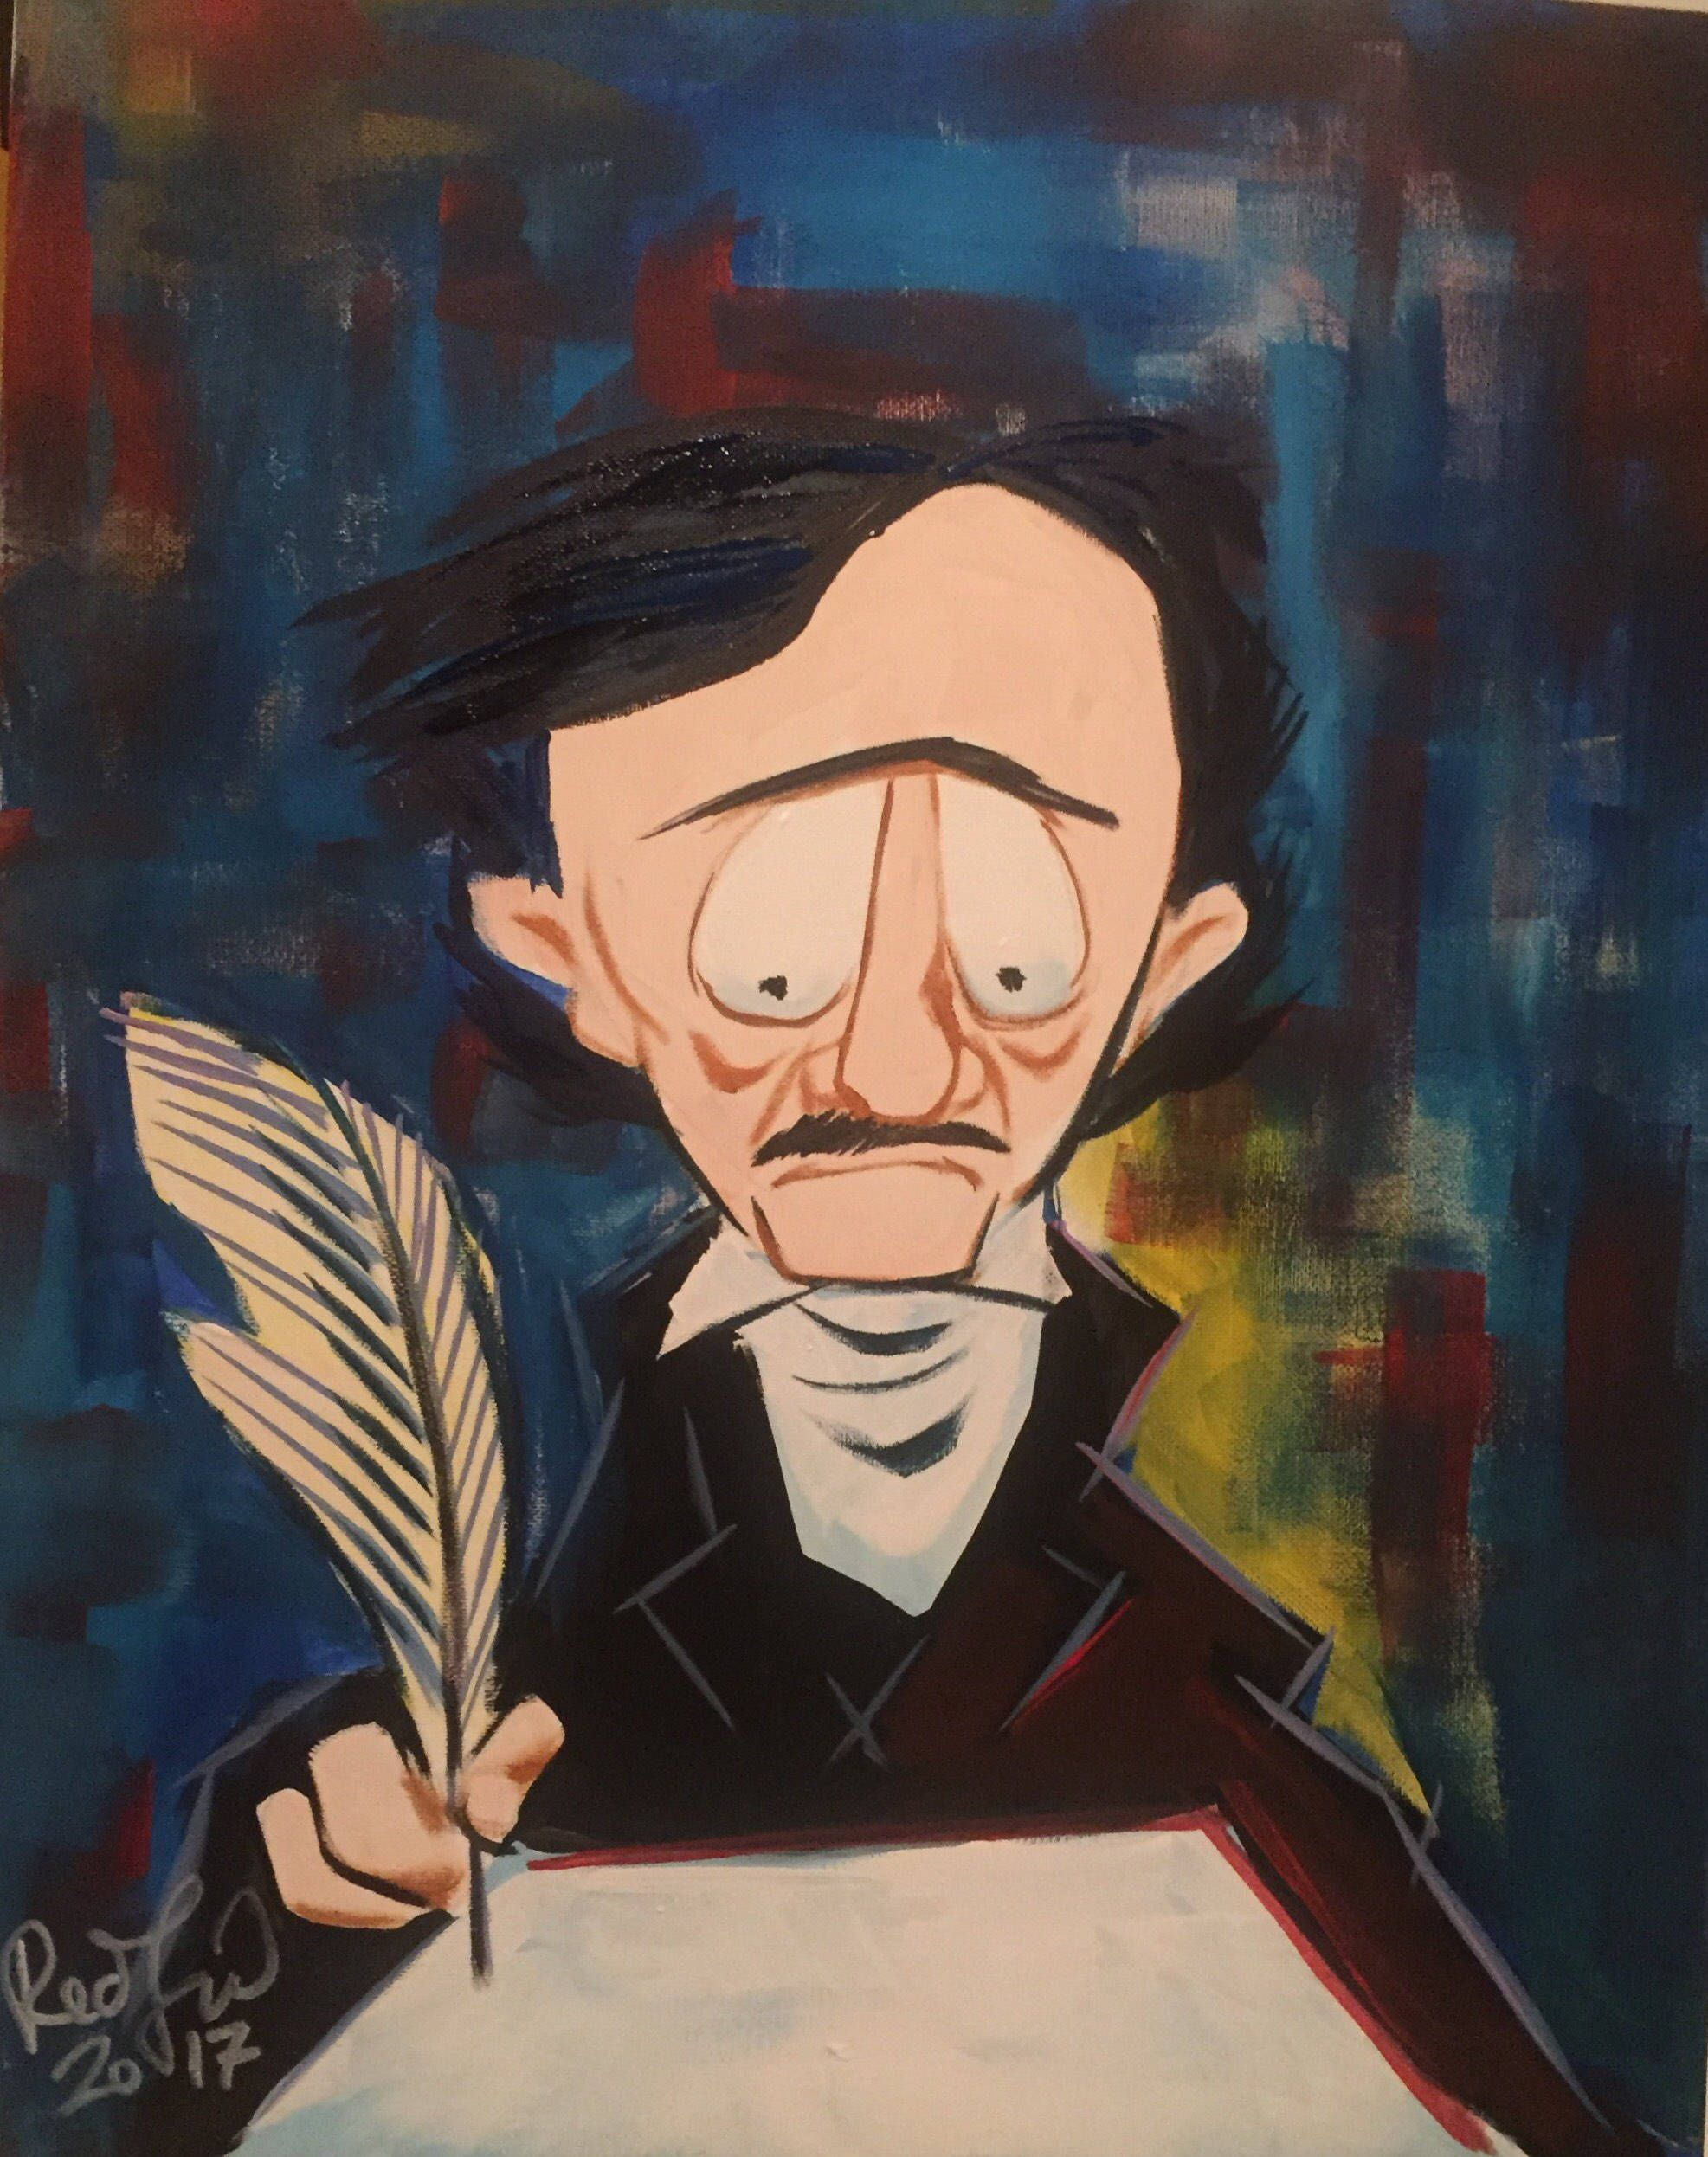 POE AND THE HORROR OF THE BLANK PAGE (2017) BY MARK REDFIELD ...